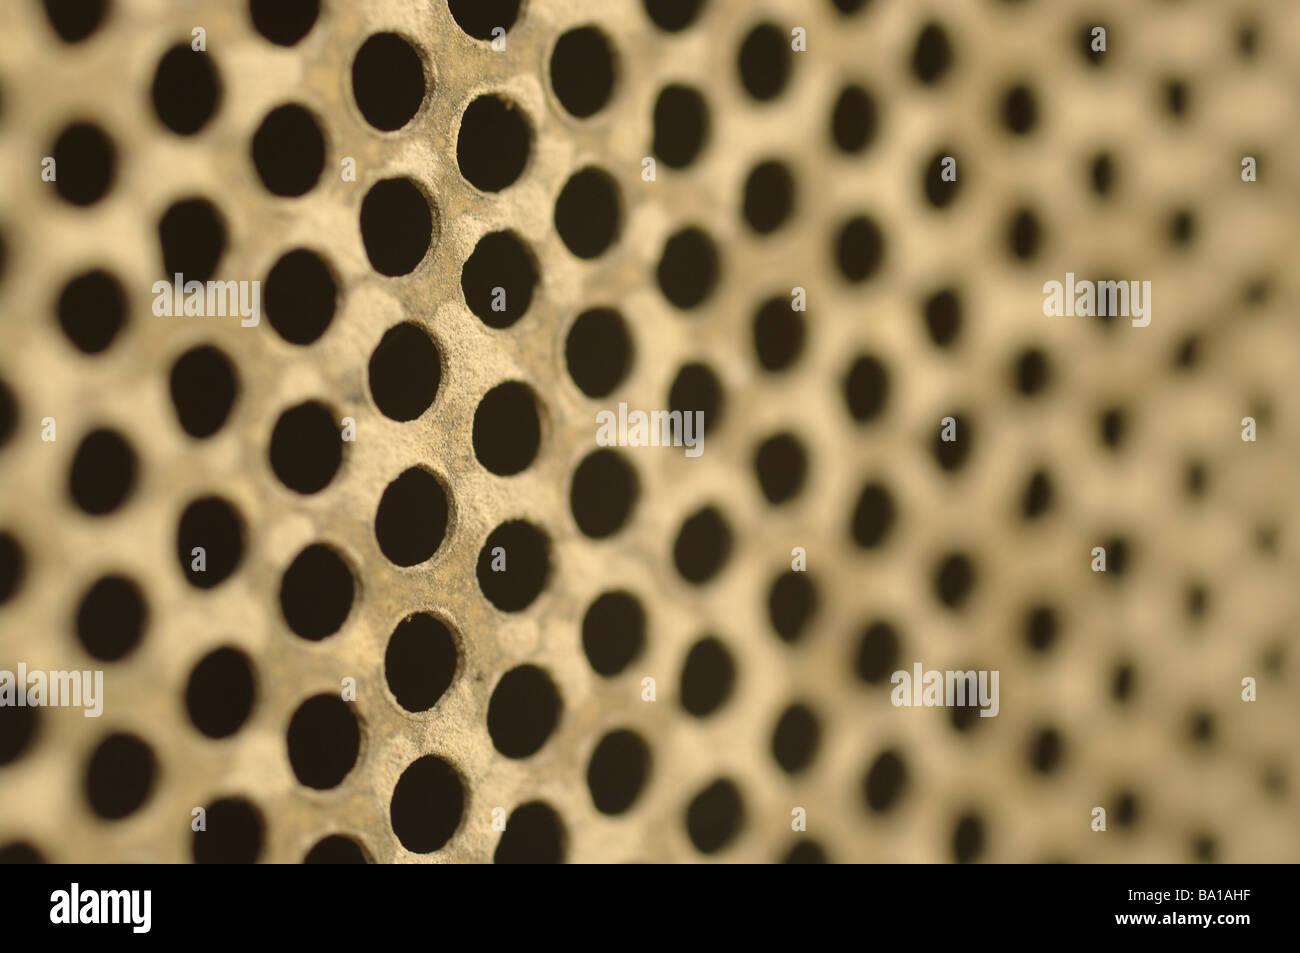 old brass metal mesh holes background texture - Stock Image